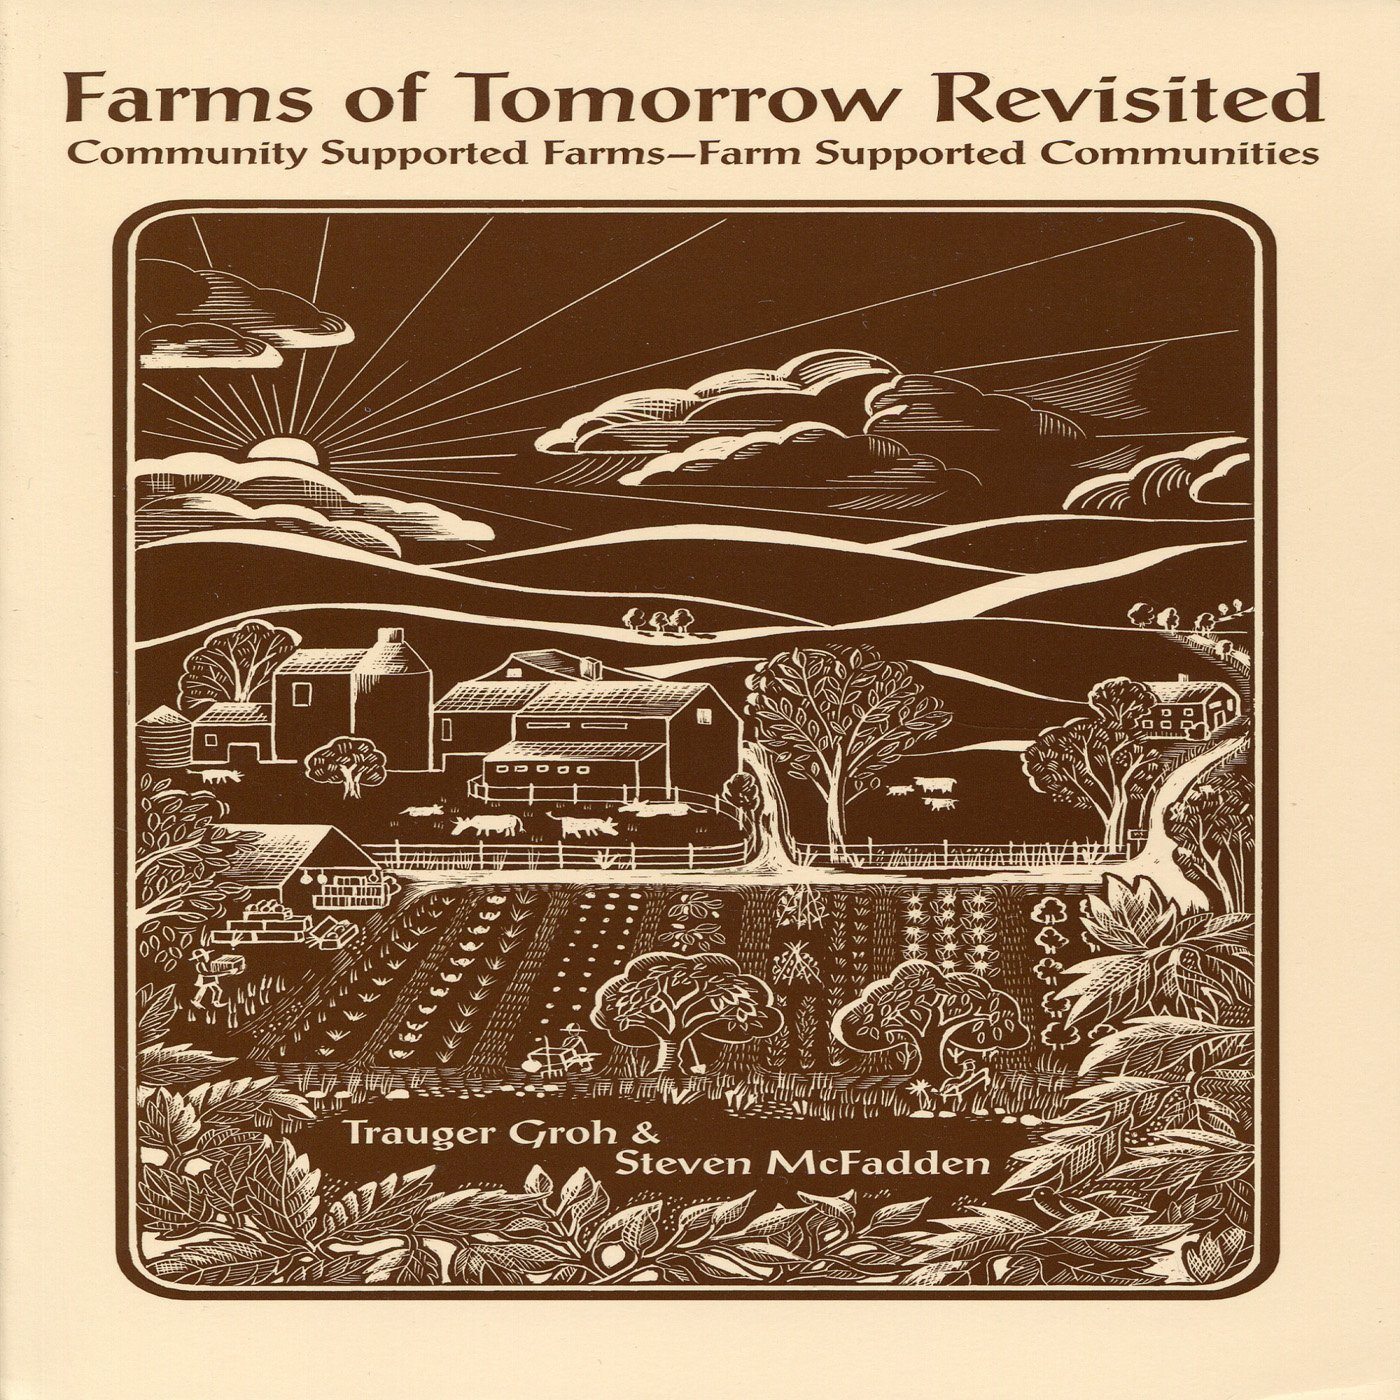 Farms of Tomorrow Revisited (Steven McFadden, Trauger Groh)